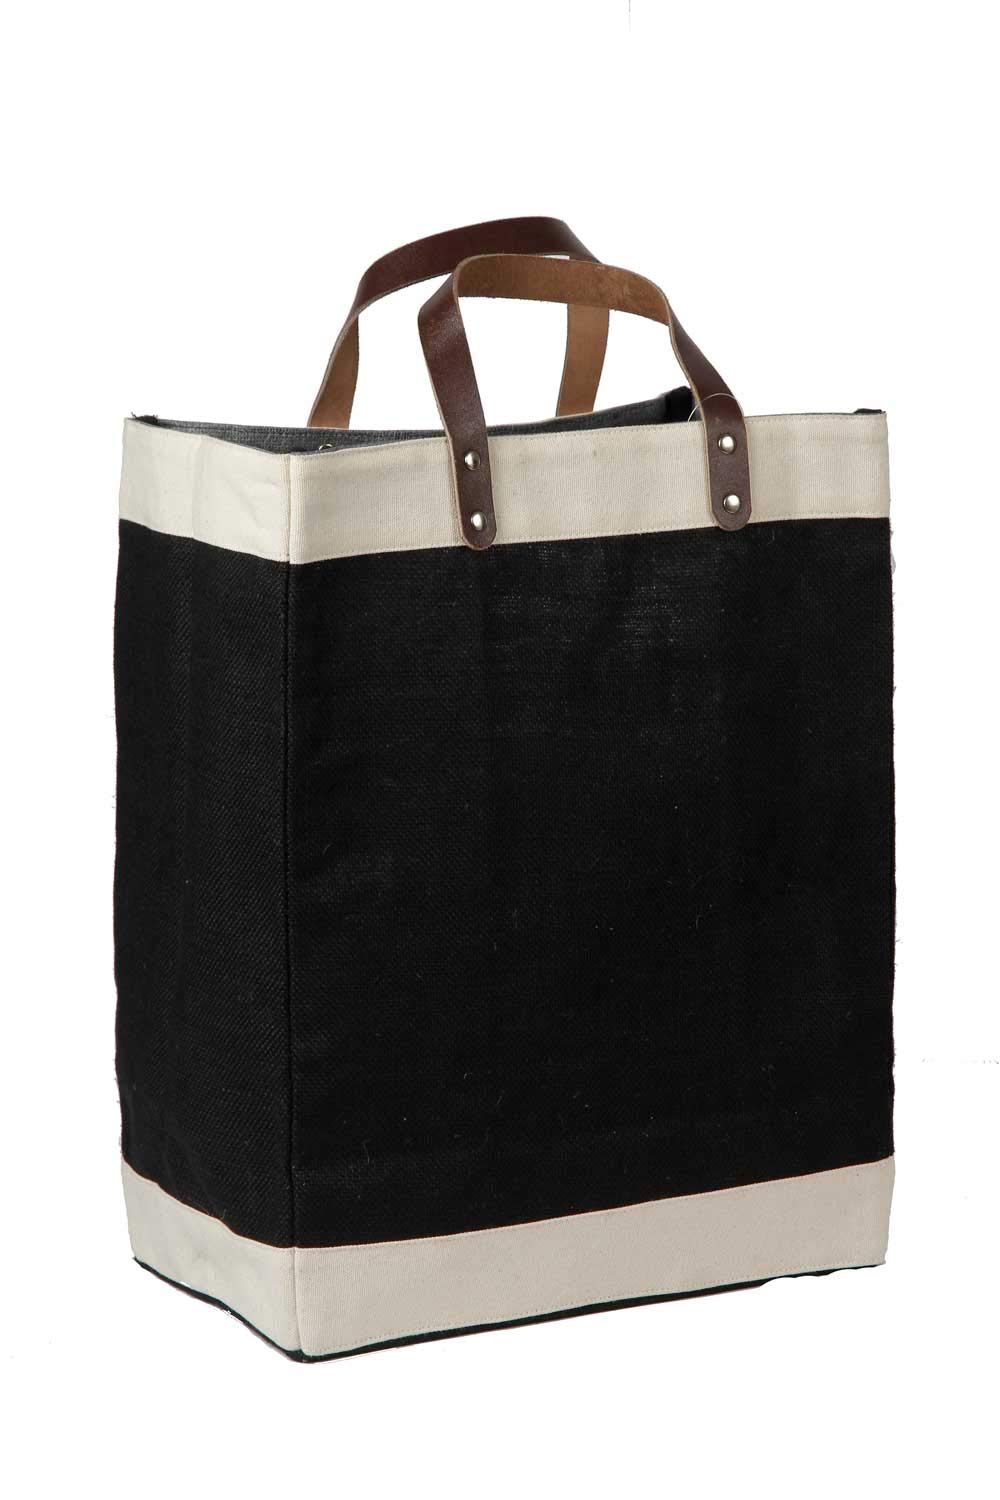 Pack of 25 – Eco-Friendly Jute Tote Bag with Cotton Accents Leather Handles 13 W x 17 H x 8 Gusset – Cyber Monday Week CarryGreen Bags